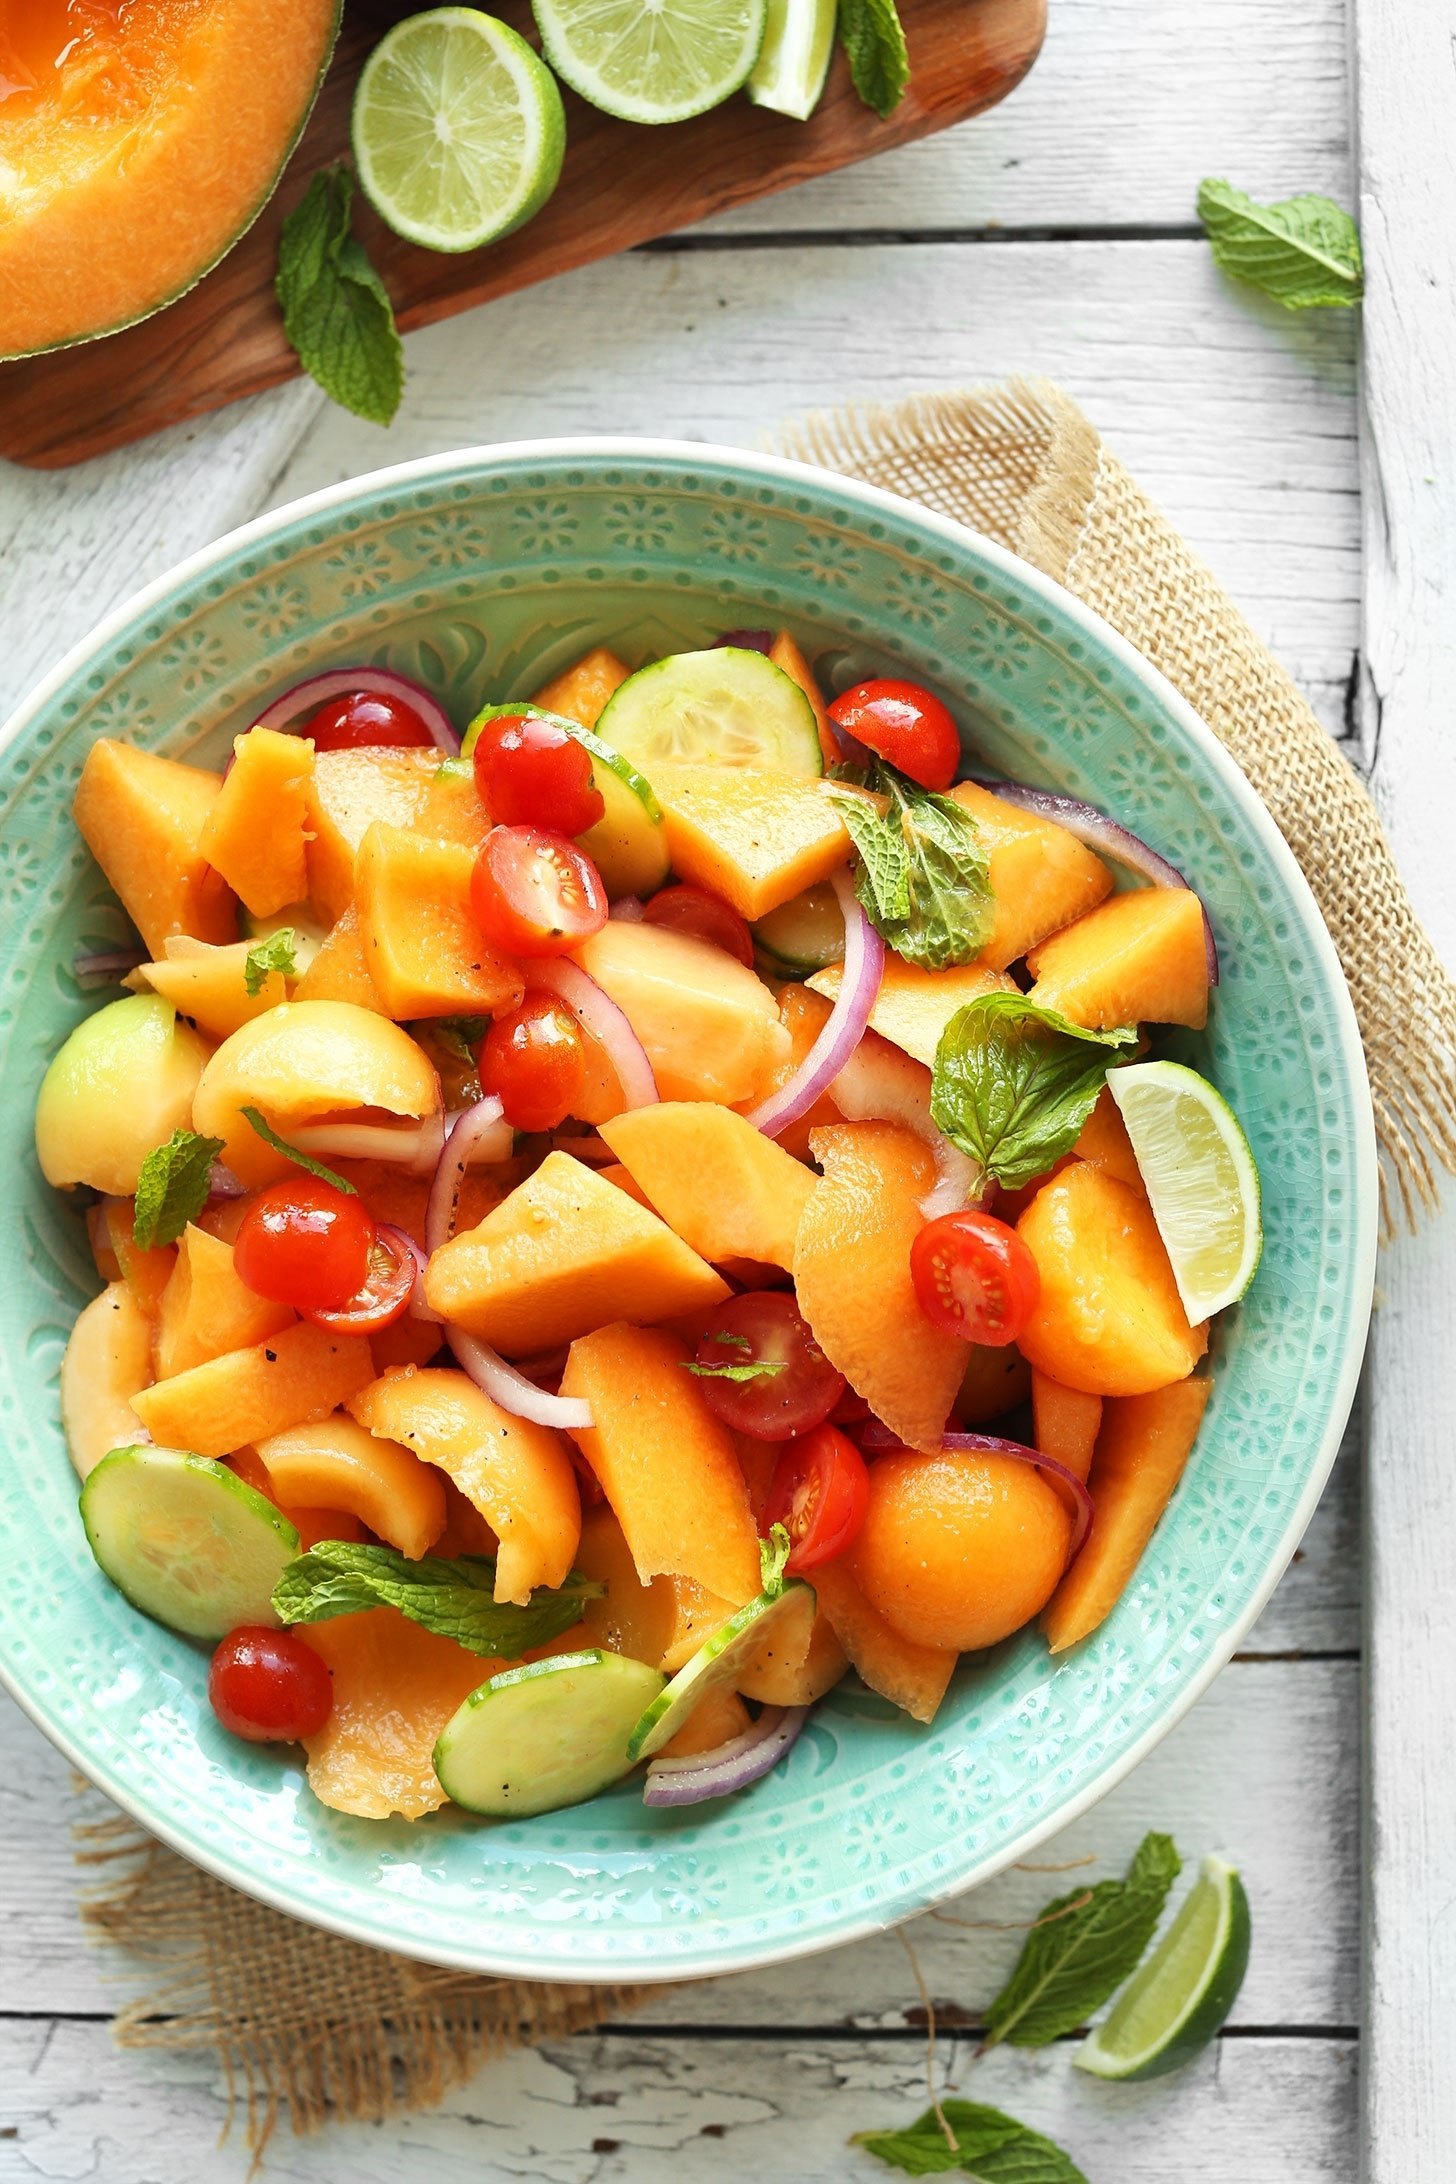 10 Famous Light Dinner Ideas For Summer summer tomato cantaloupe salad recipe 2020